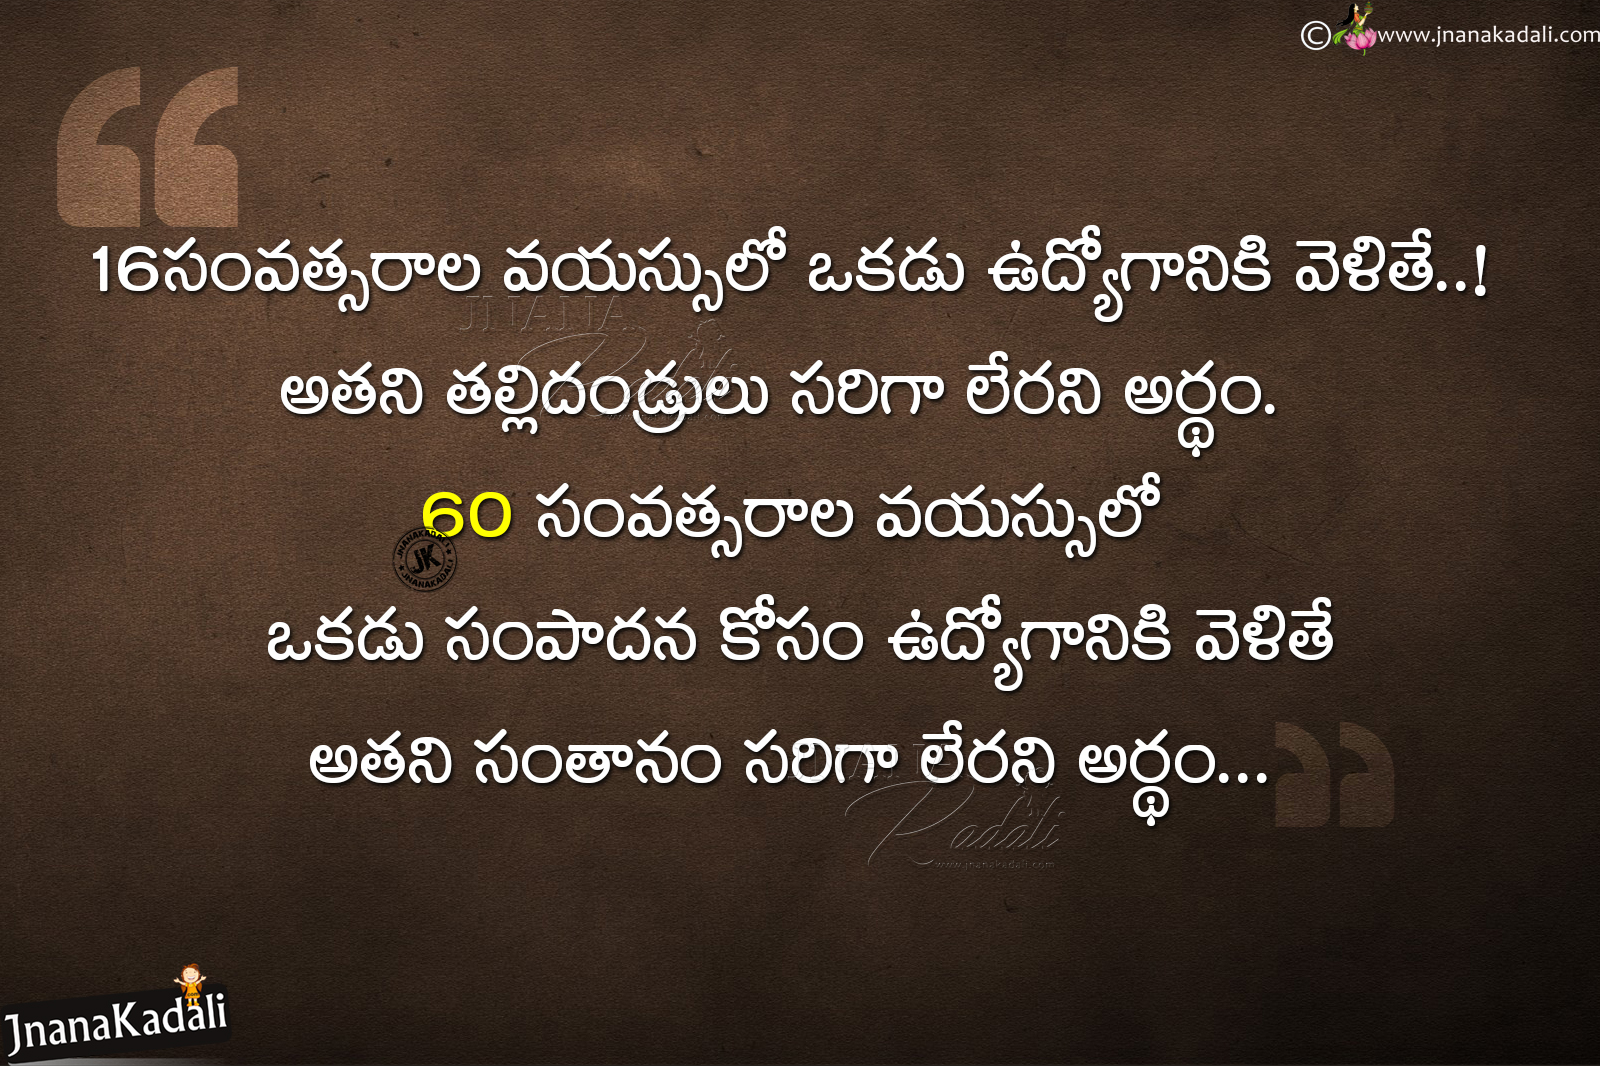 Telugu Quotes, Best Life Quotes In Telugu, Online Telugu Life Messages,  Being Gentle